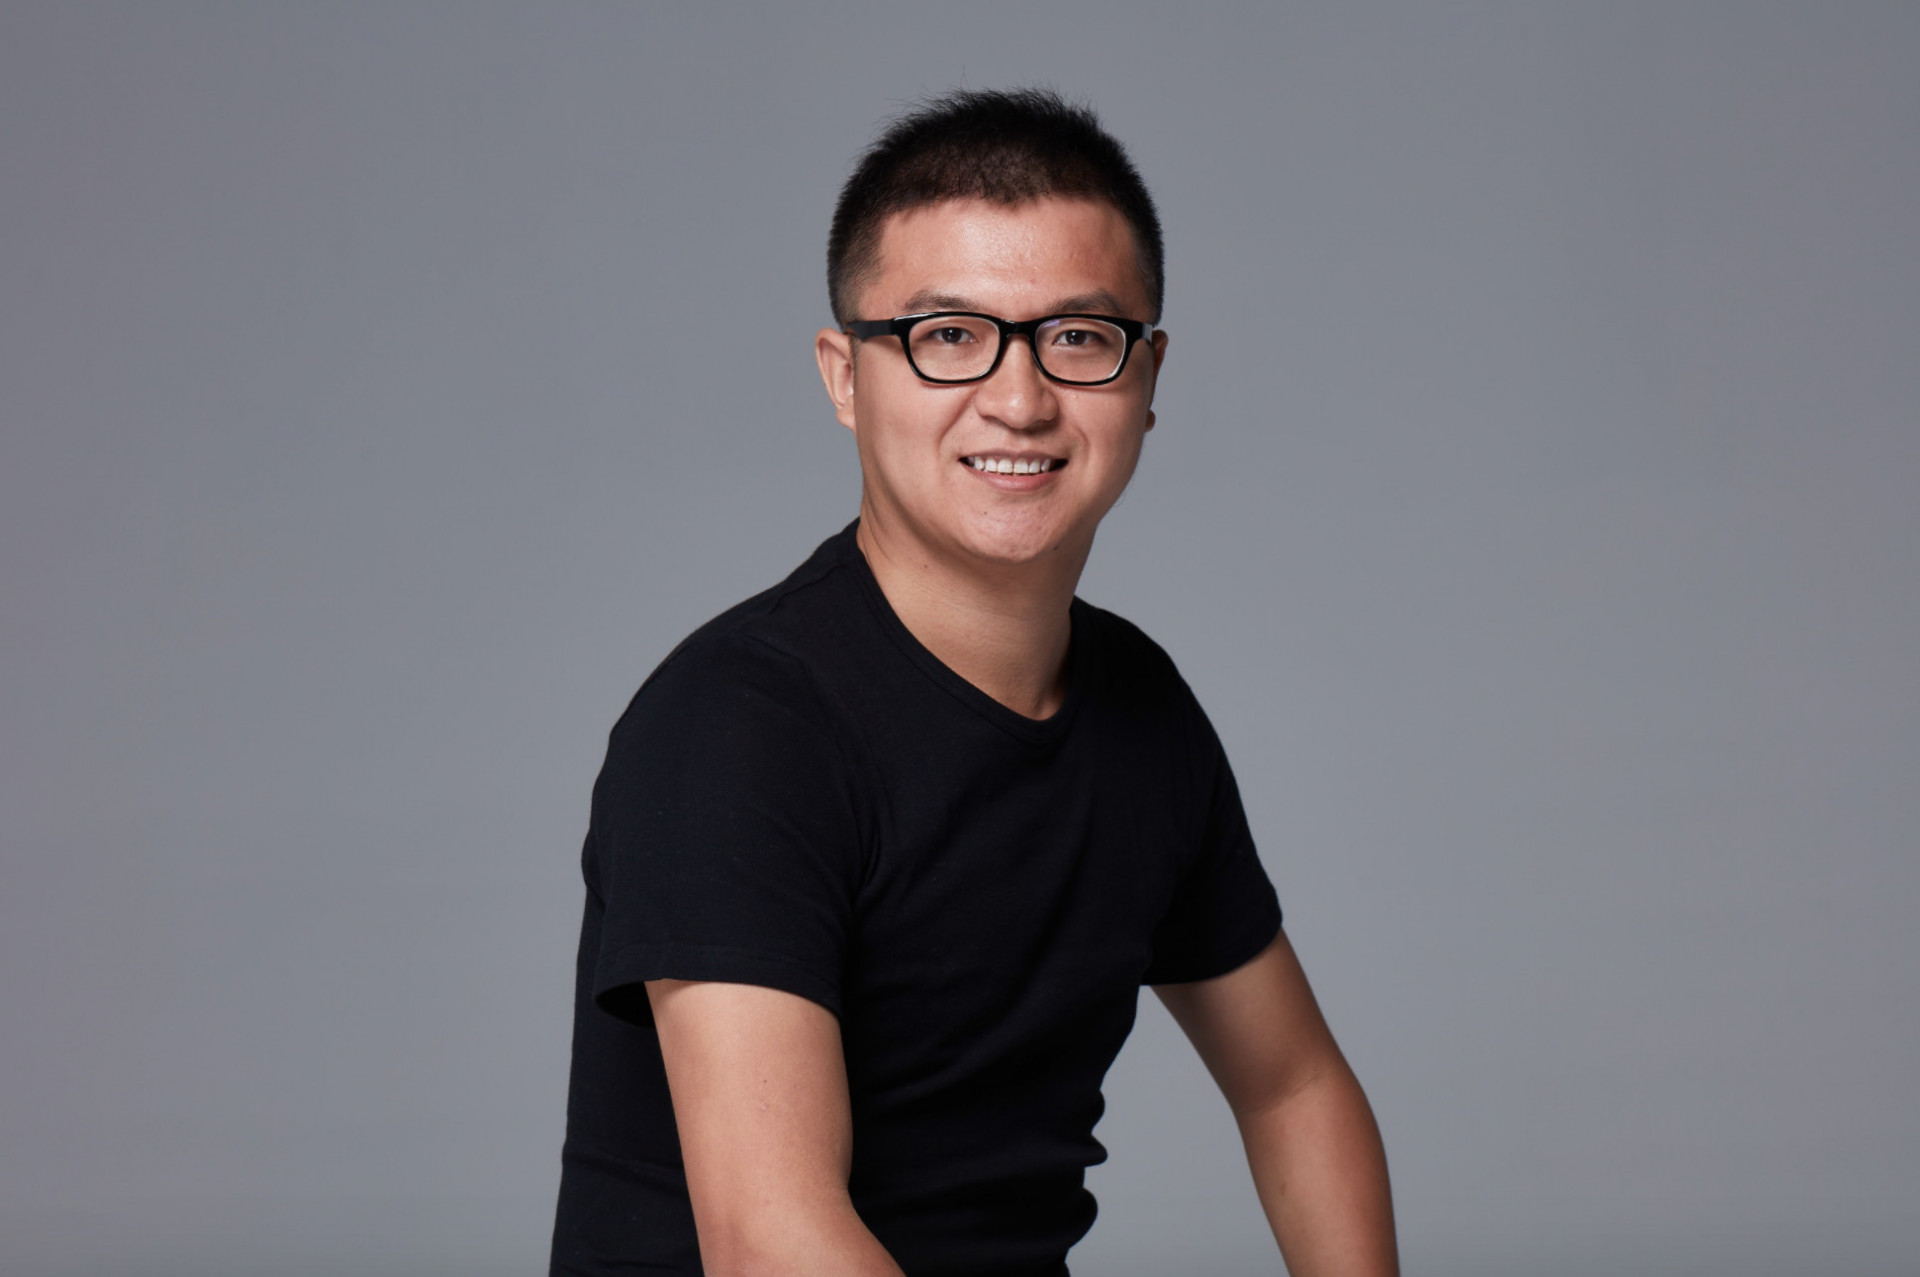 Patrick Dai, CEO and founder at Qtum (Image Credit: Qtum)